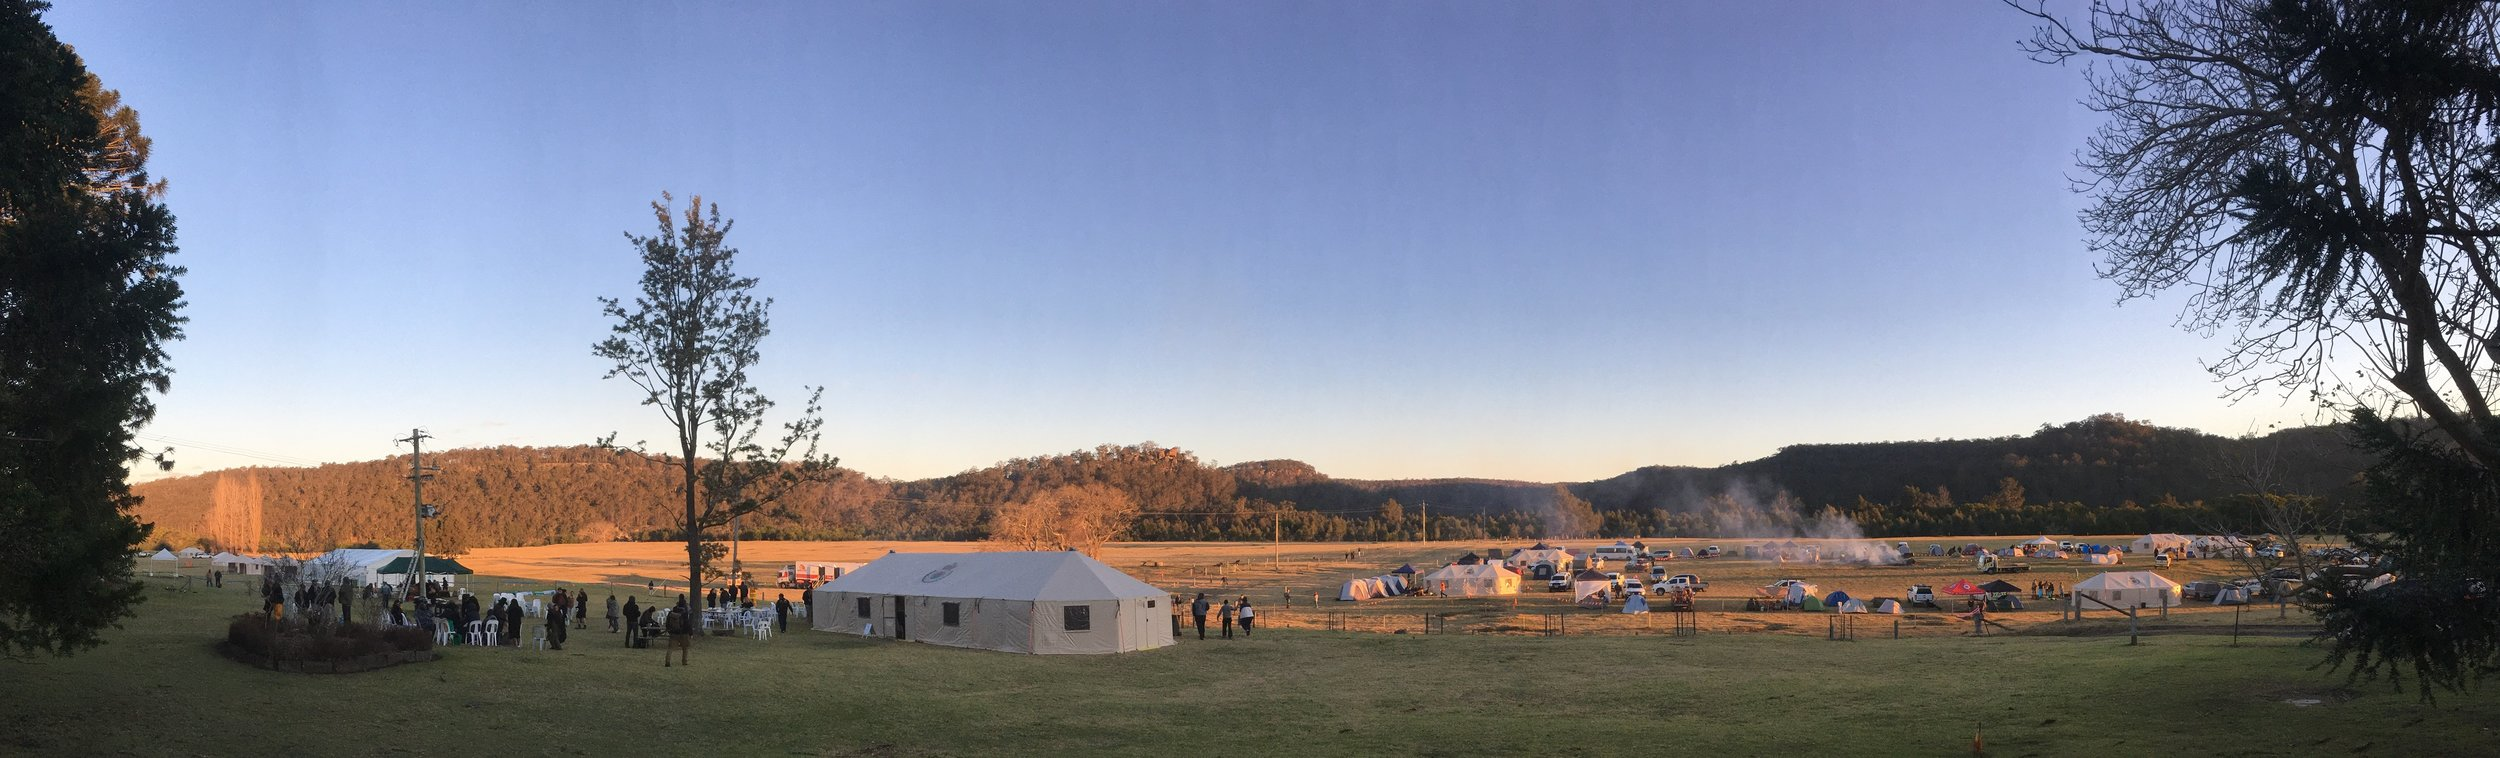 Panorama of the site at NIFW 2018.jpg